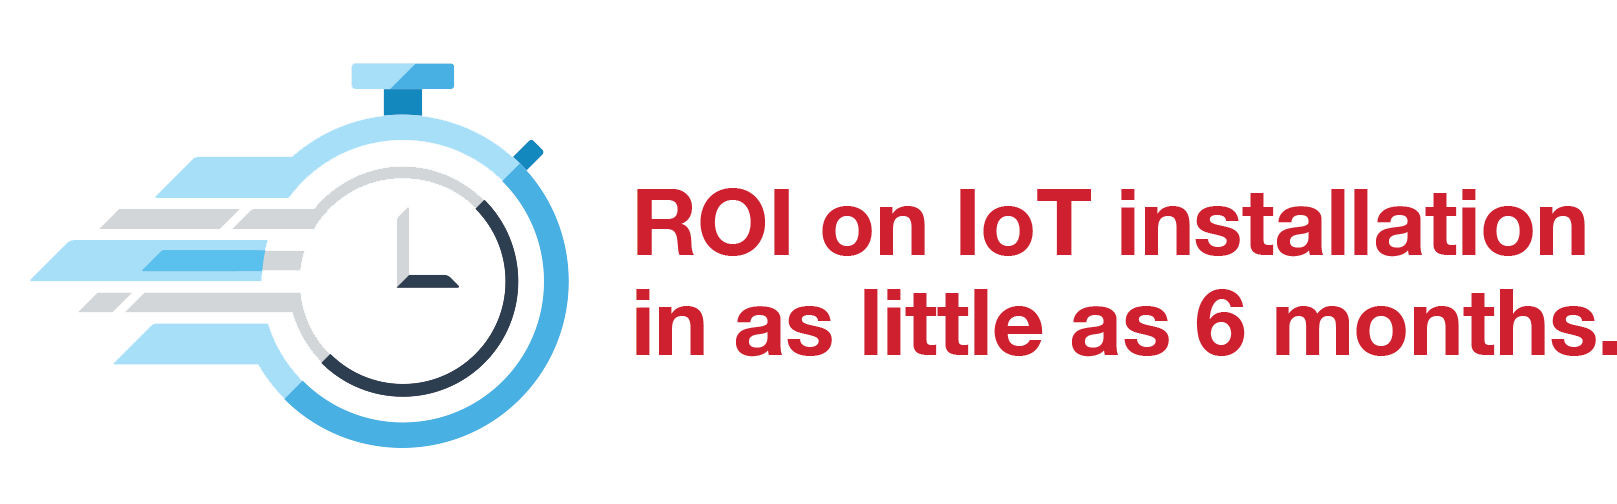 ROI on IoT